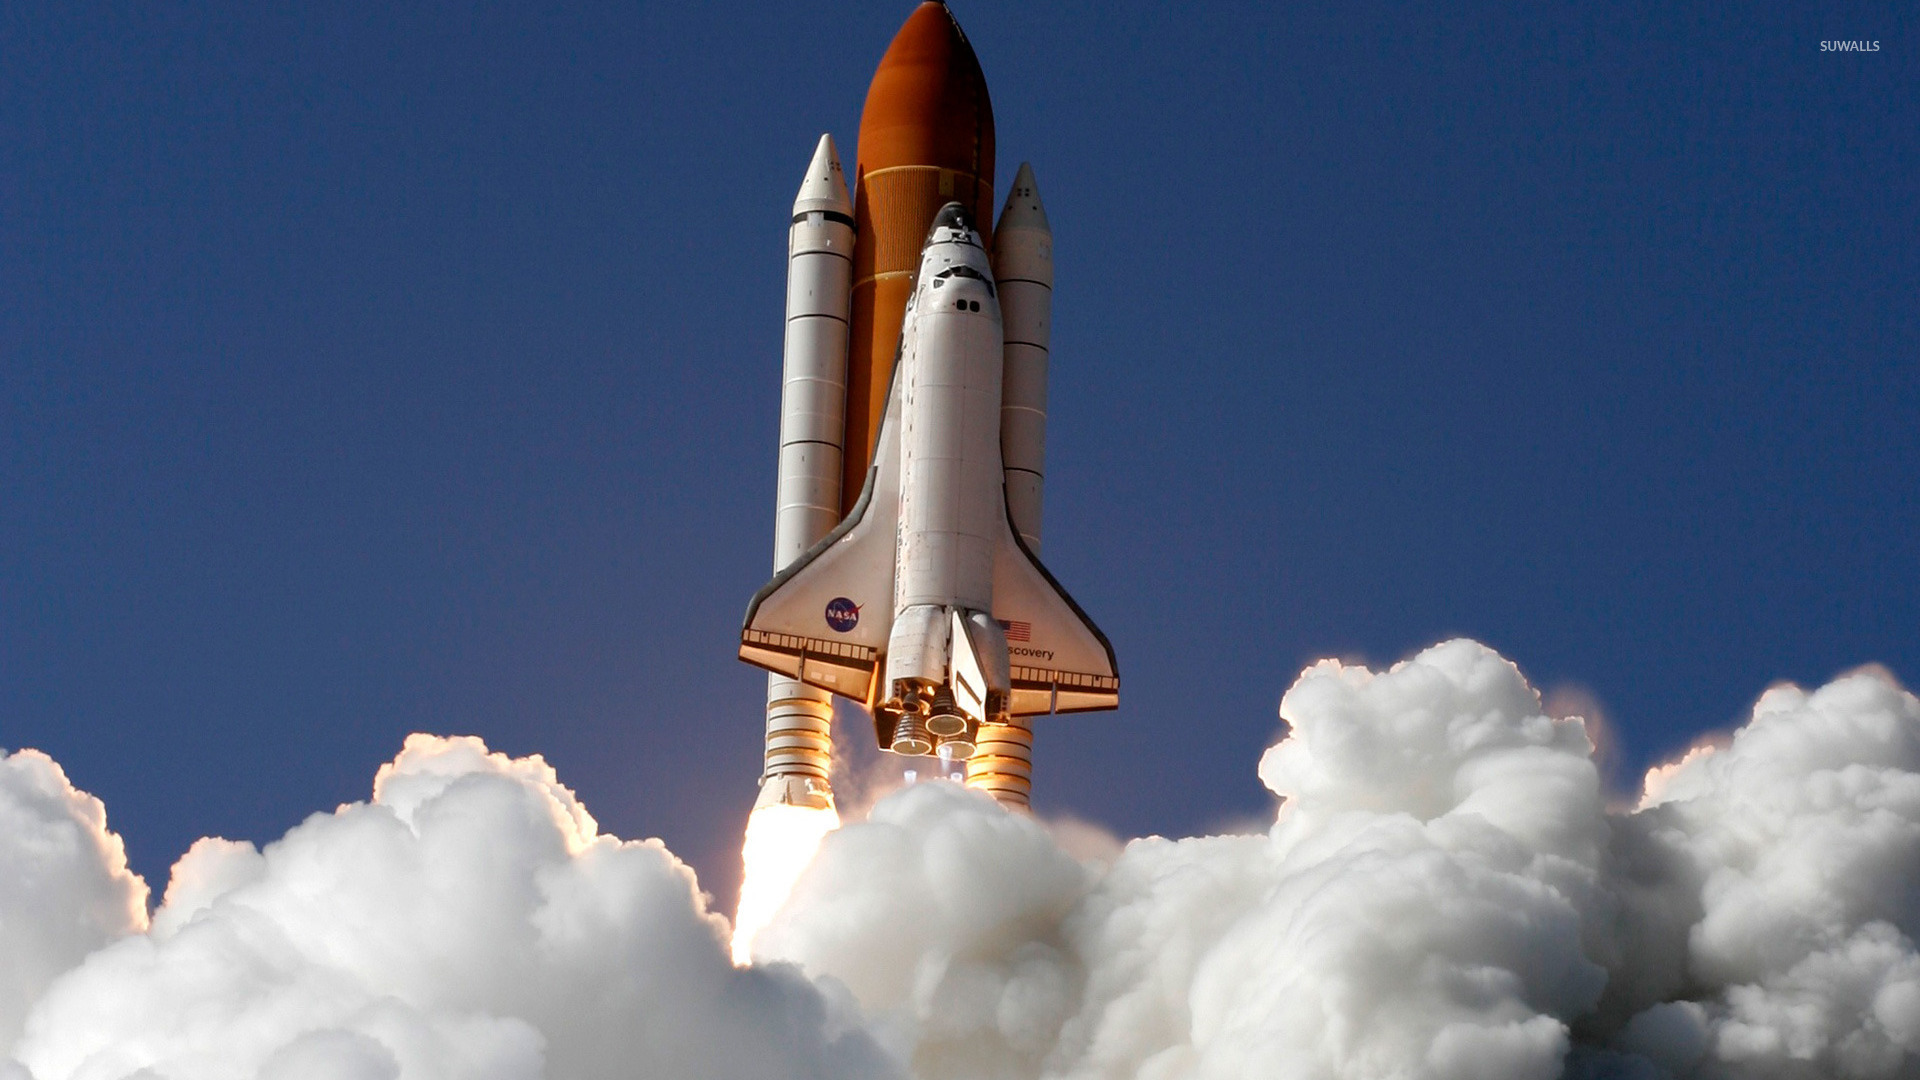 Space Shuttle Atlantis wallpaper   Space wallpapers   10511 1920x1080